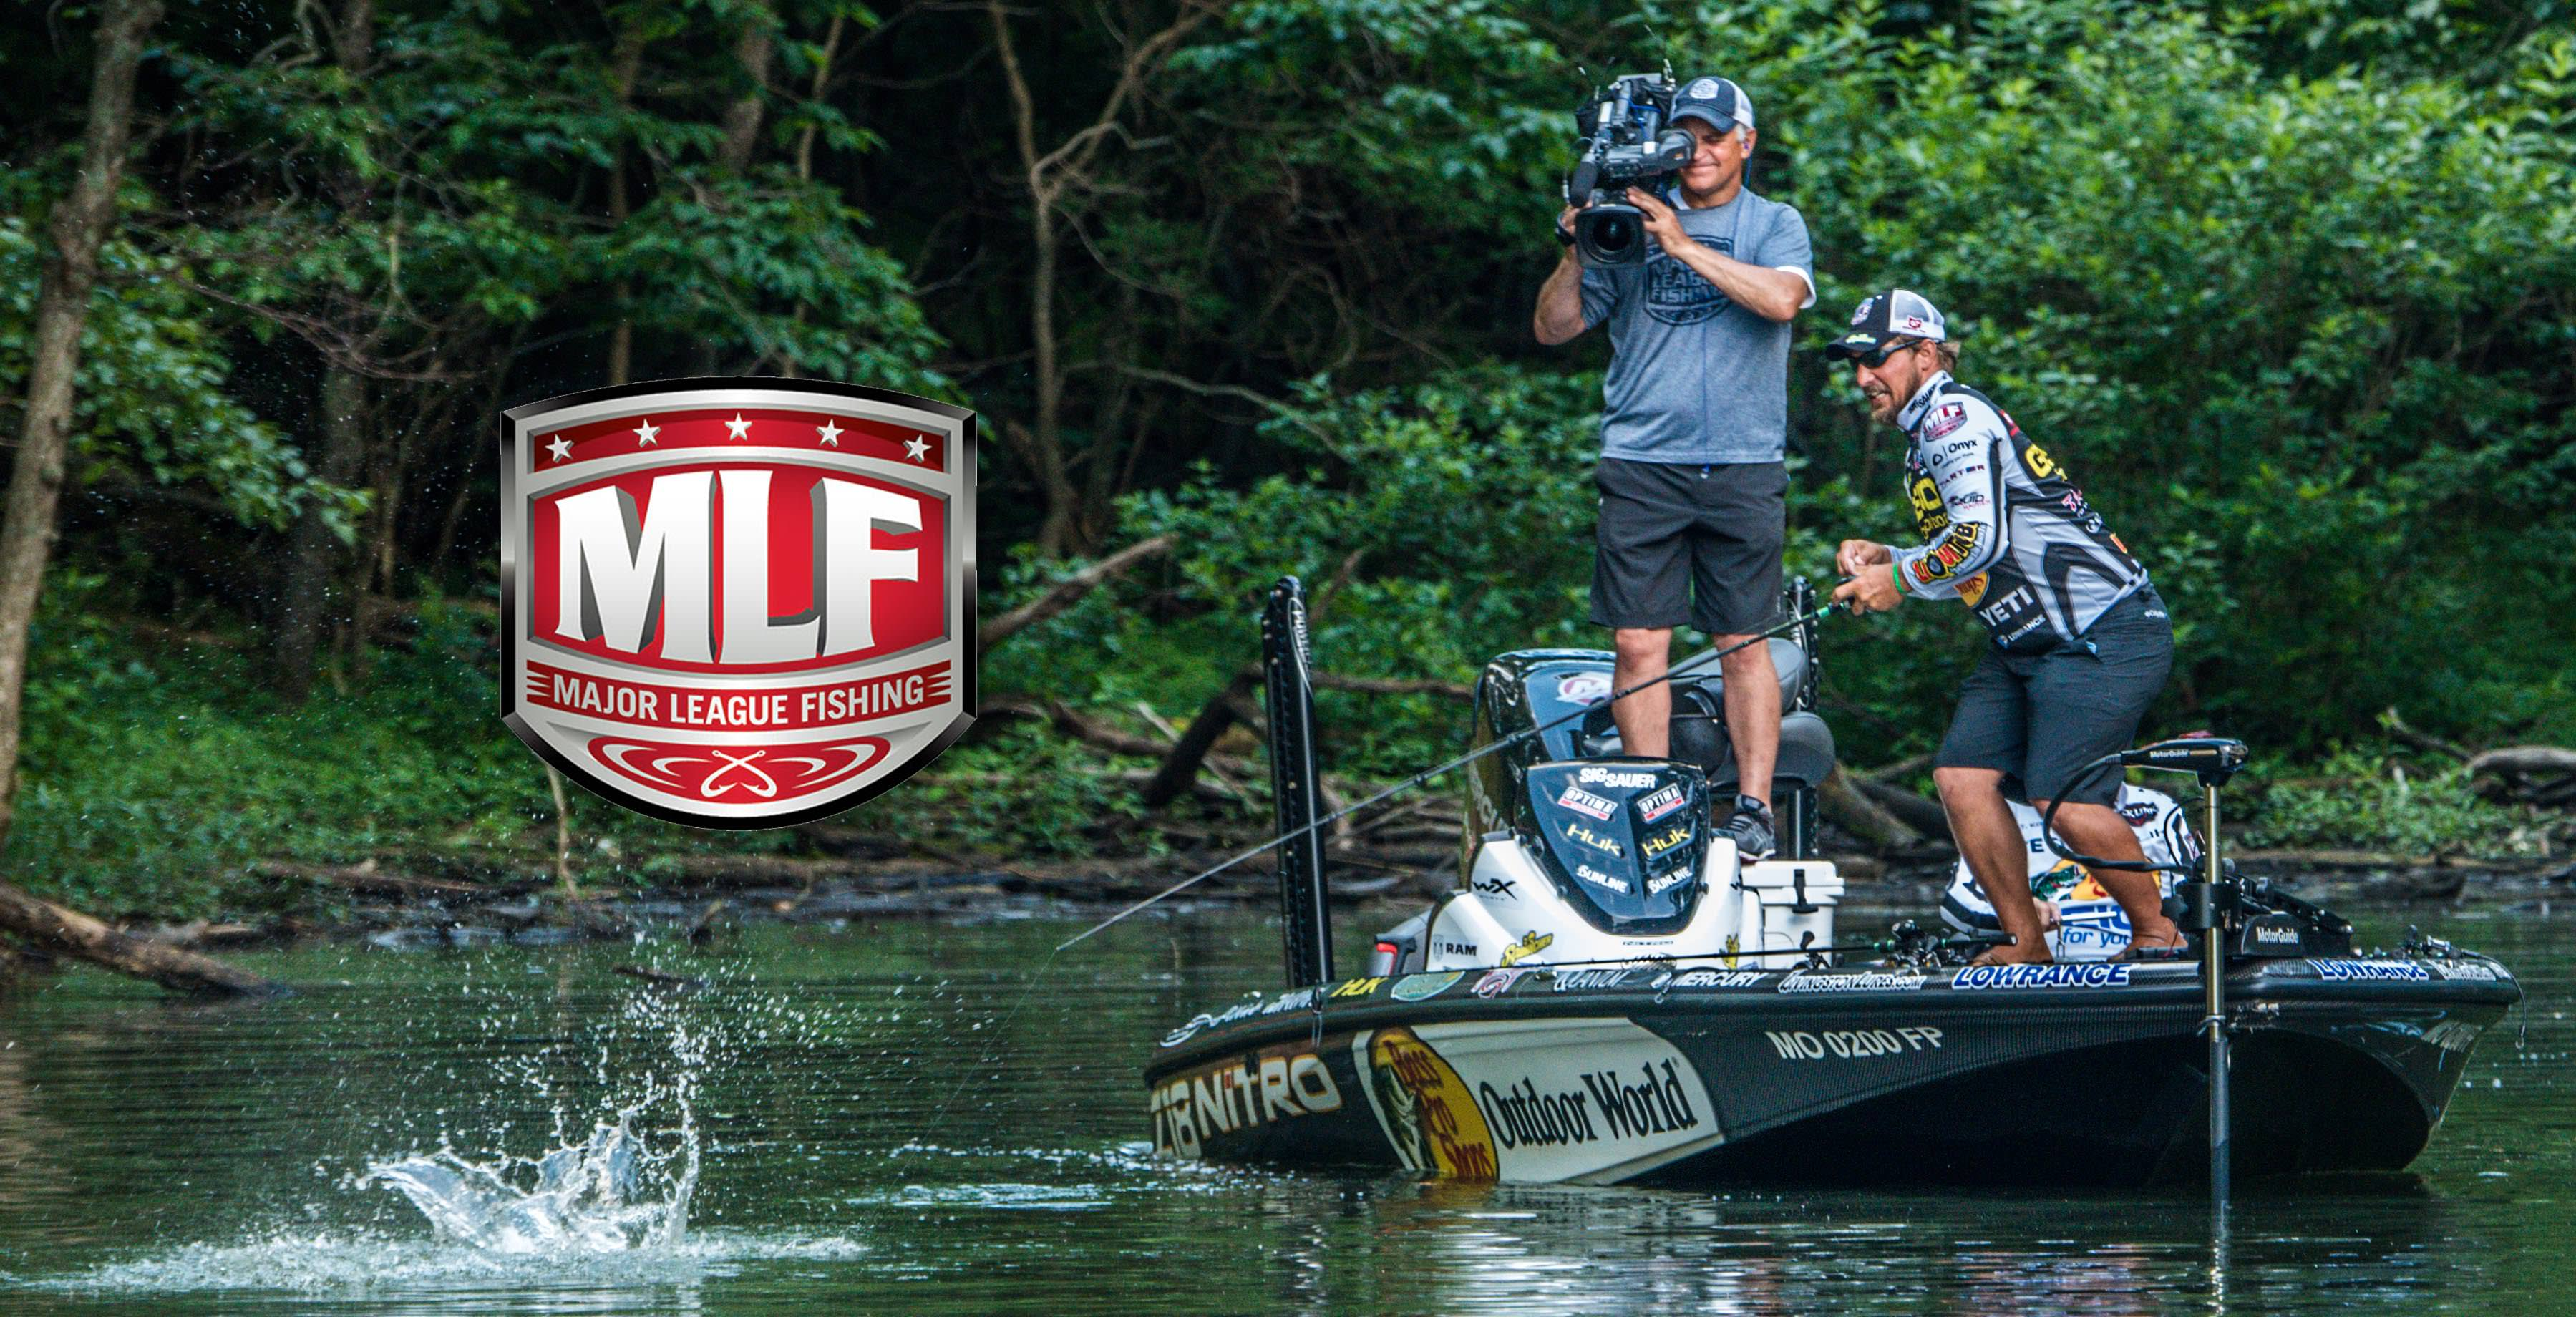 Realtime leaderboards surprise locations no practice days and no limits are just a few of the ways Major League Fishing presents angling in a way the viewing